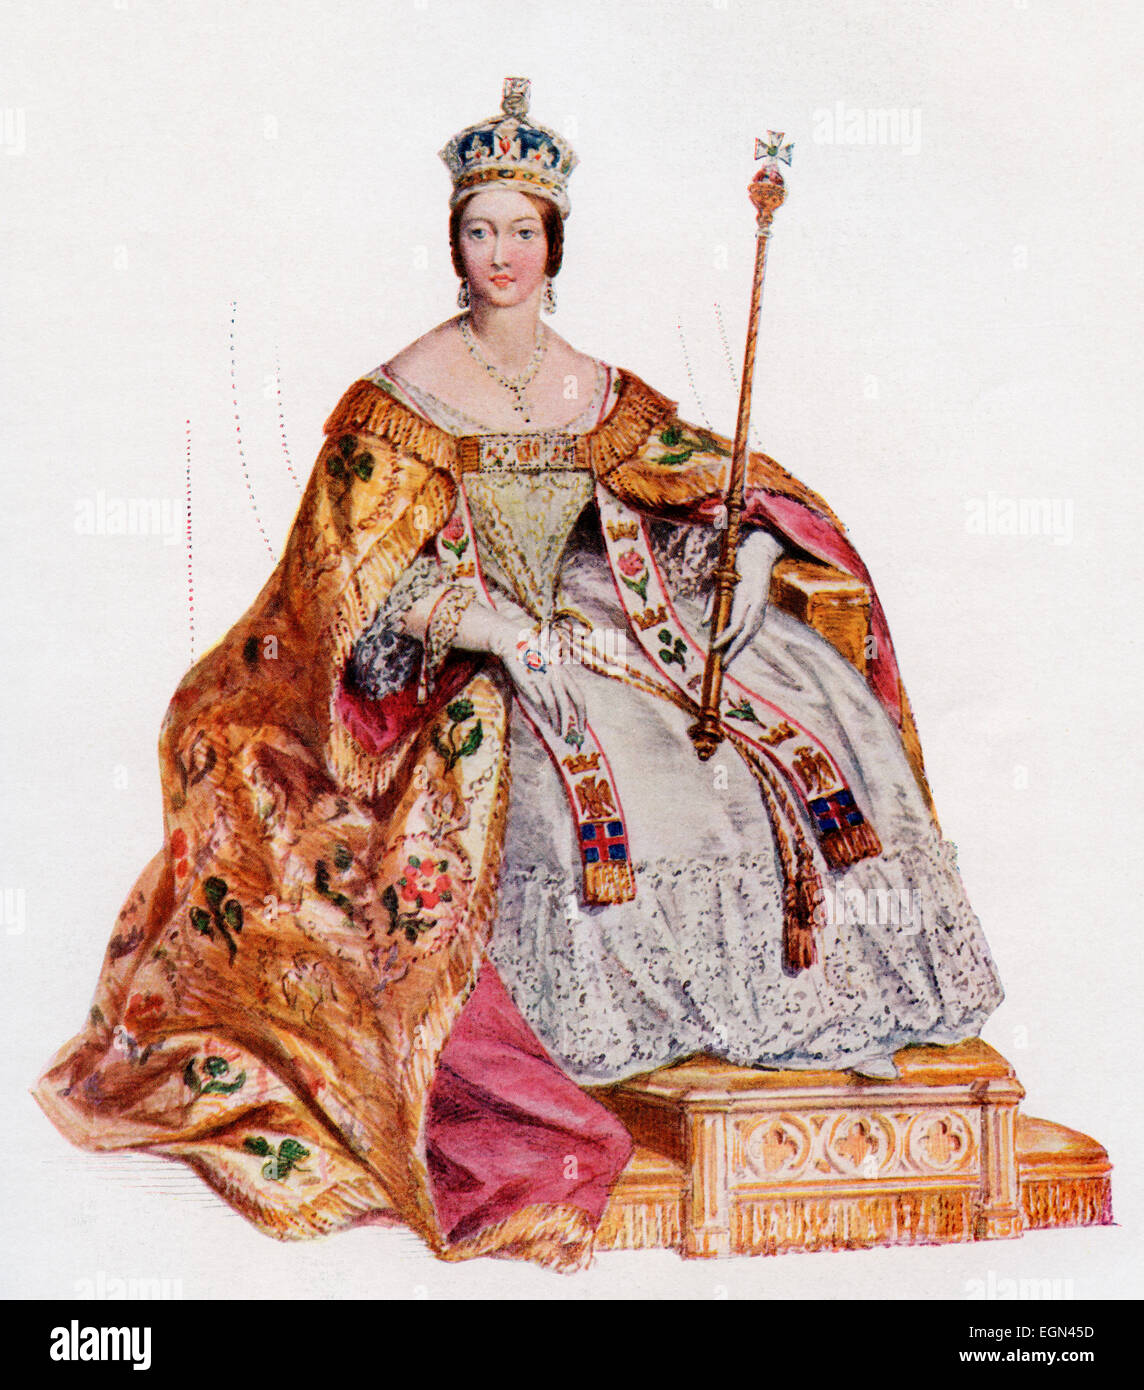 Victoria, 1819 – 1901, in her coronation robes at Westminster Abbey, 28 June, 1838.   Queen of the United Kingdom - Stock Image